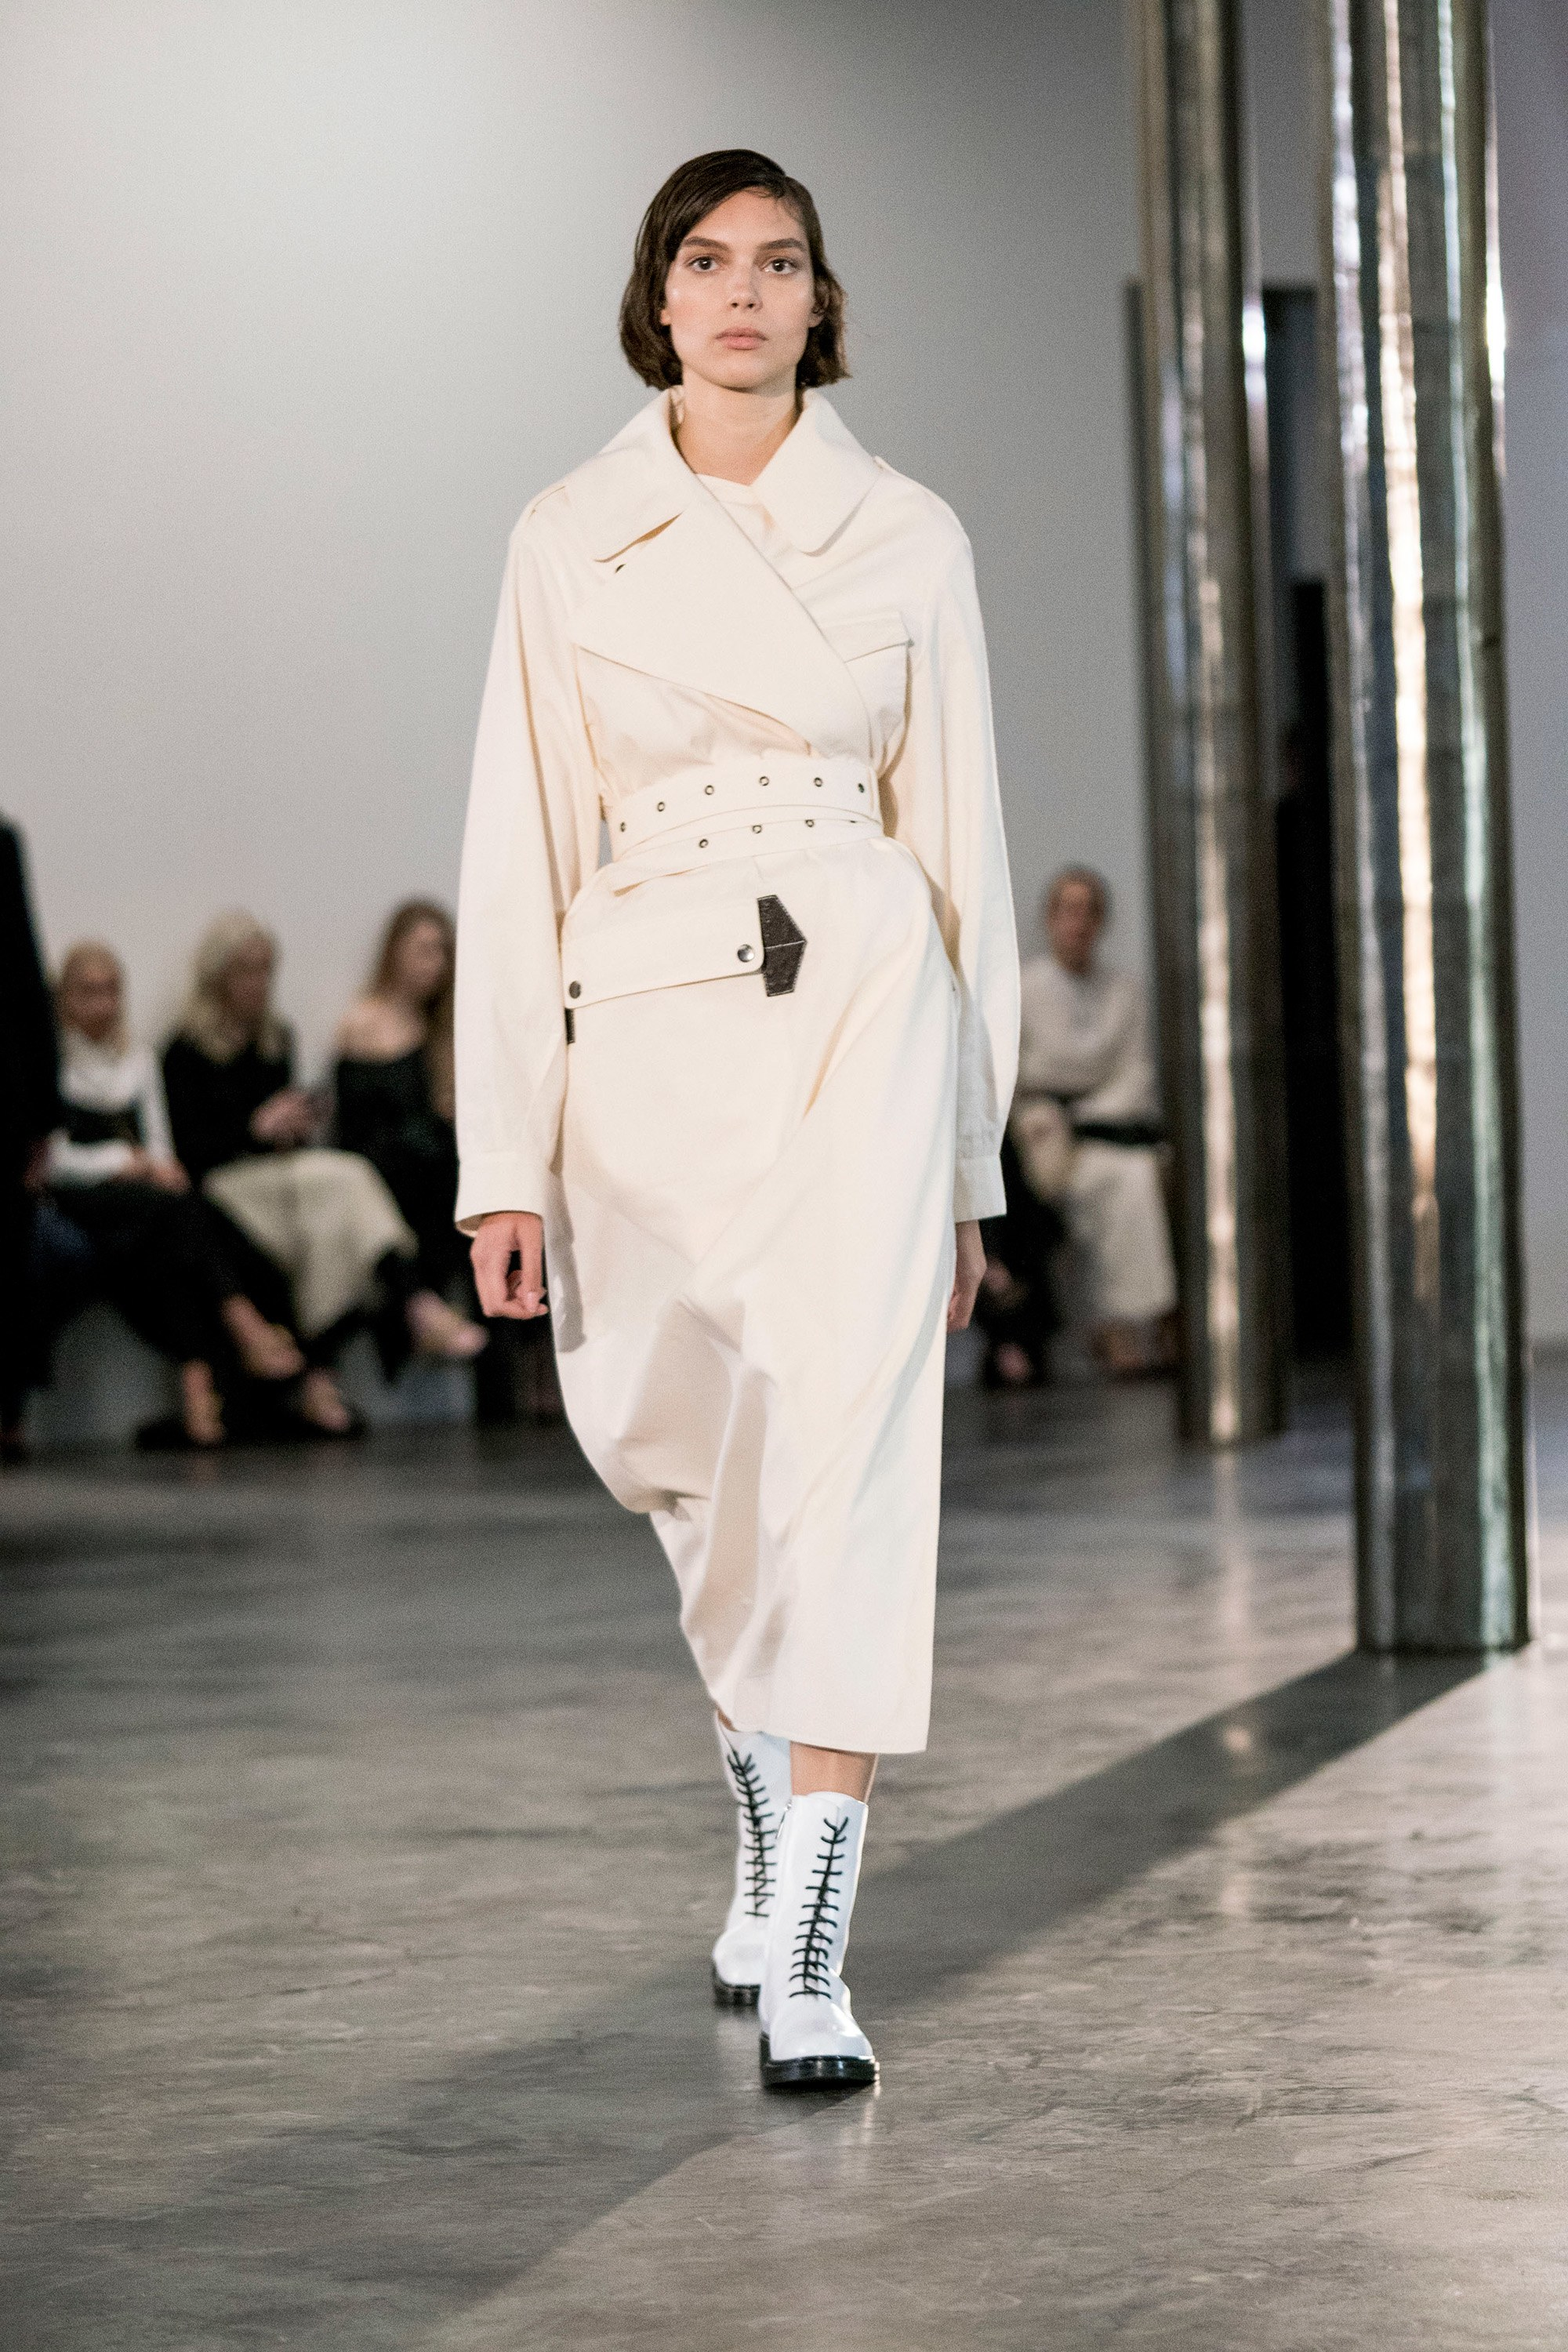 The-Row-fall-2017-fashion-show-the-impression-16